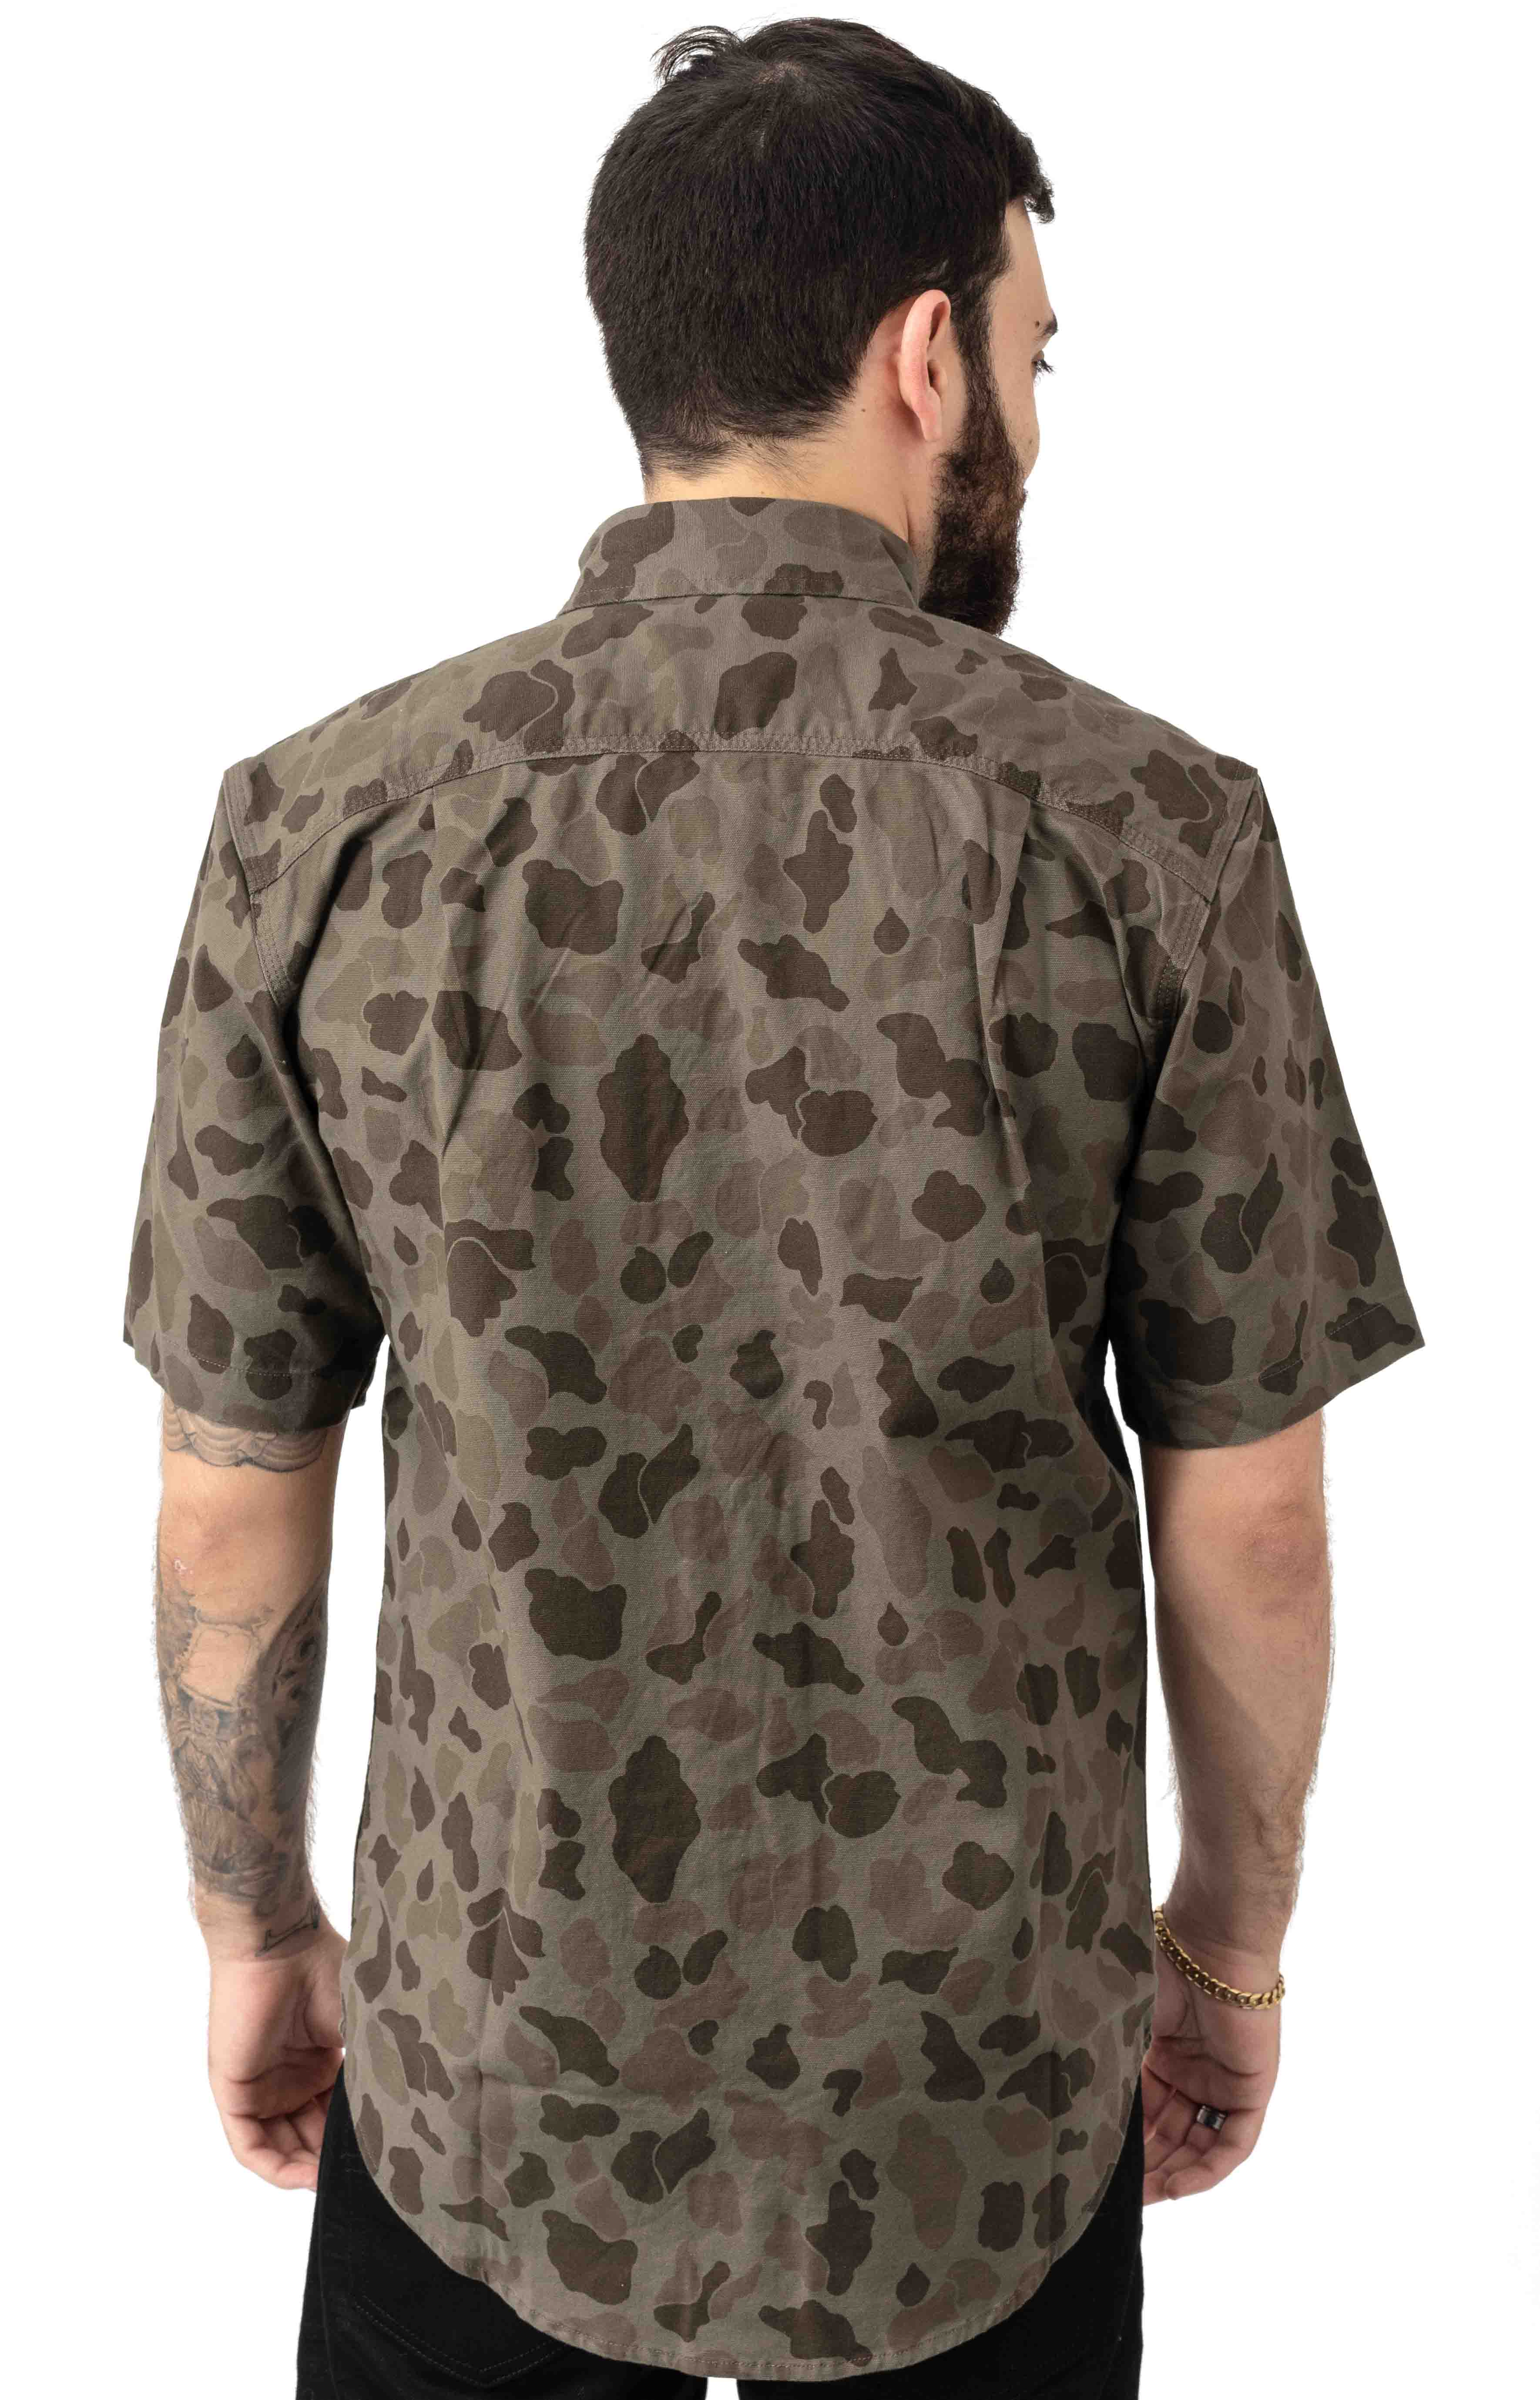 (103555) Rugged Flex Rigby S/S Work Shirt - Tarmac/Duck Camo  3